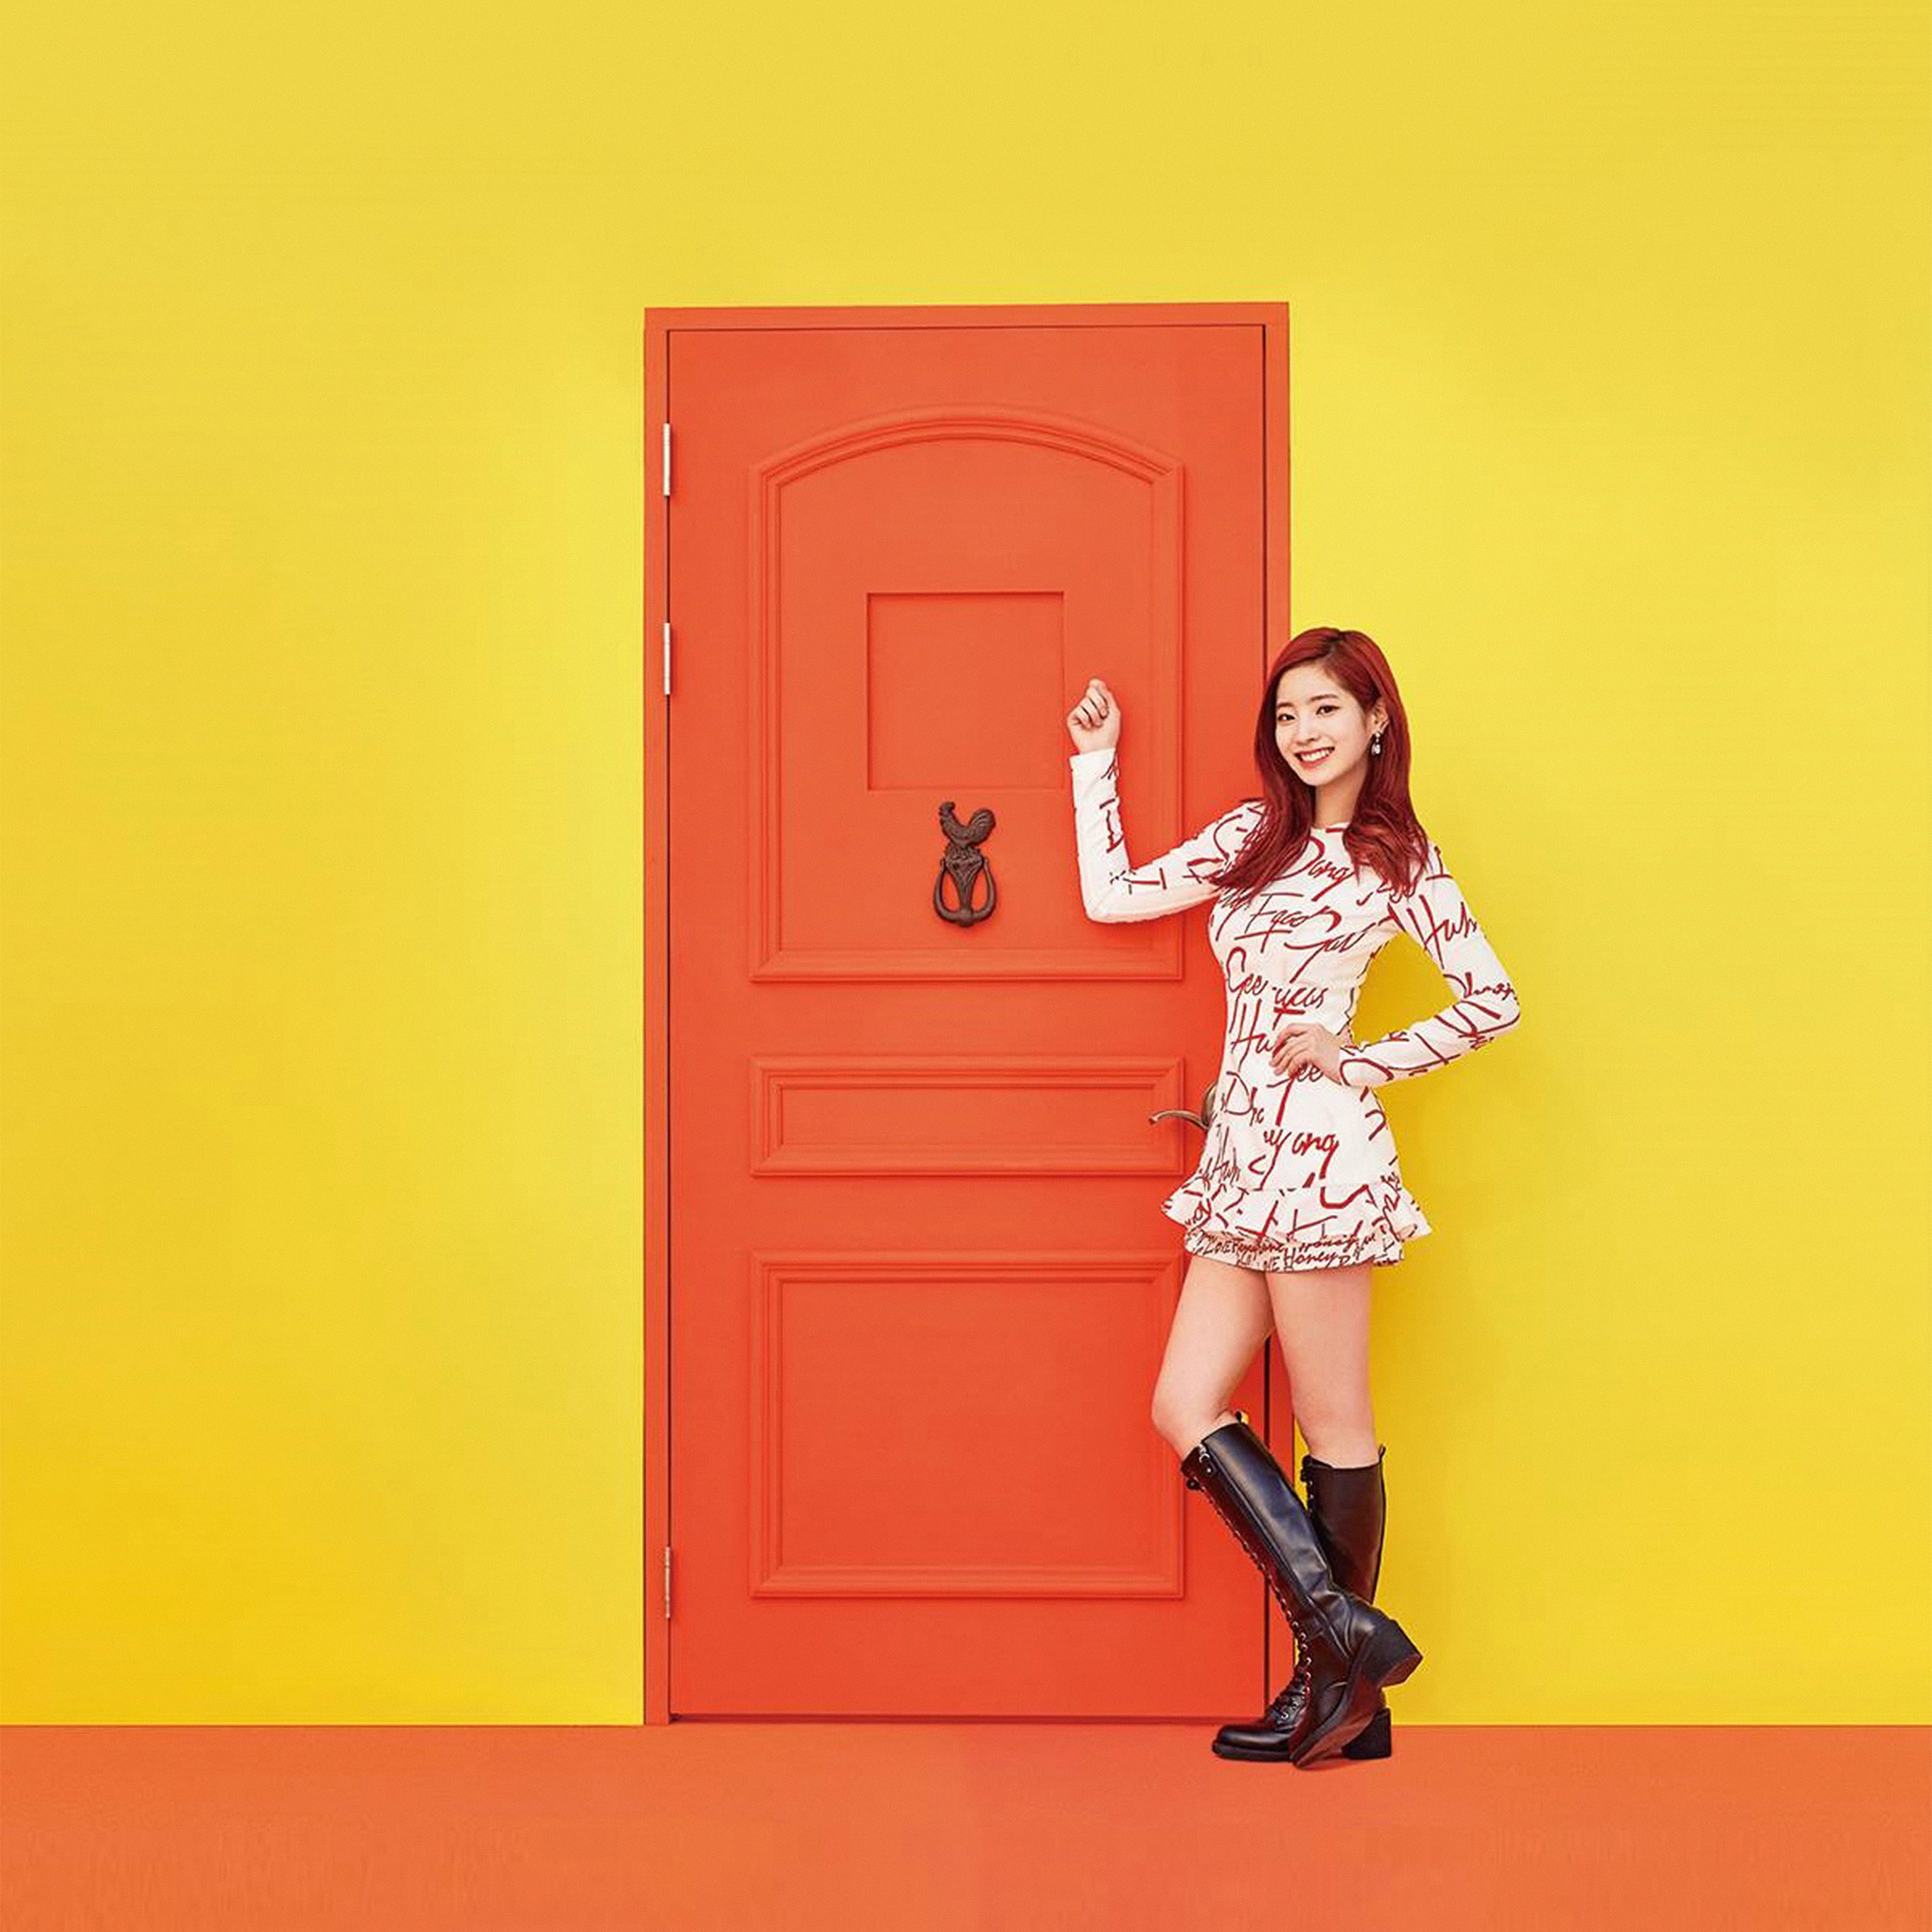 Cute Fall Wallpaper Iphone 5 Papers Co Android Wallpaper Hm35 Yellow Girl Kpop